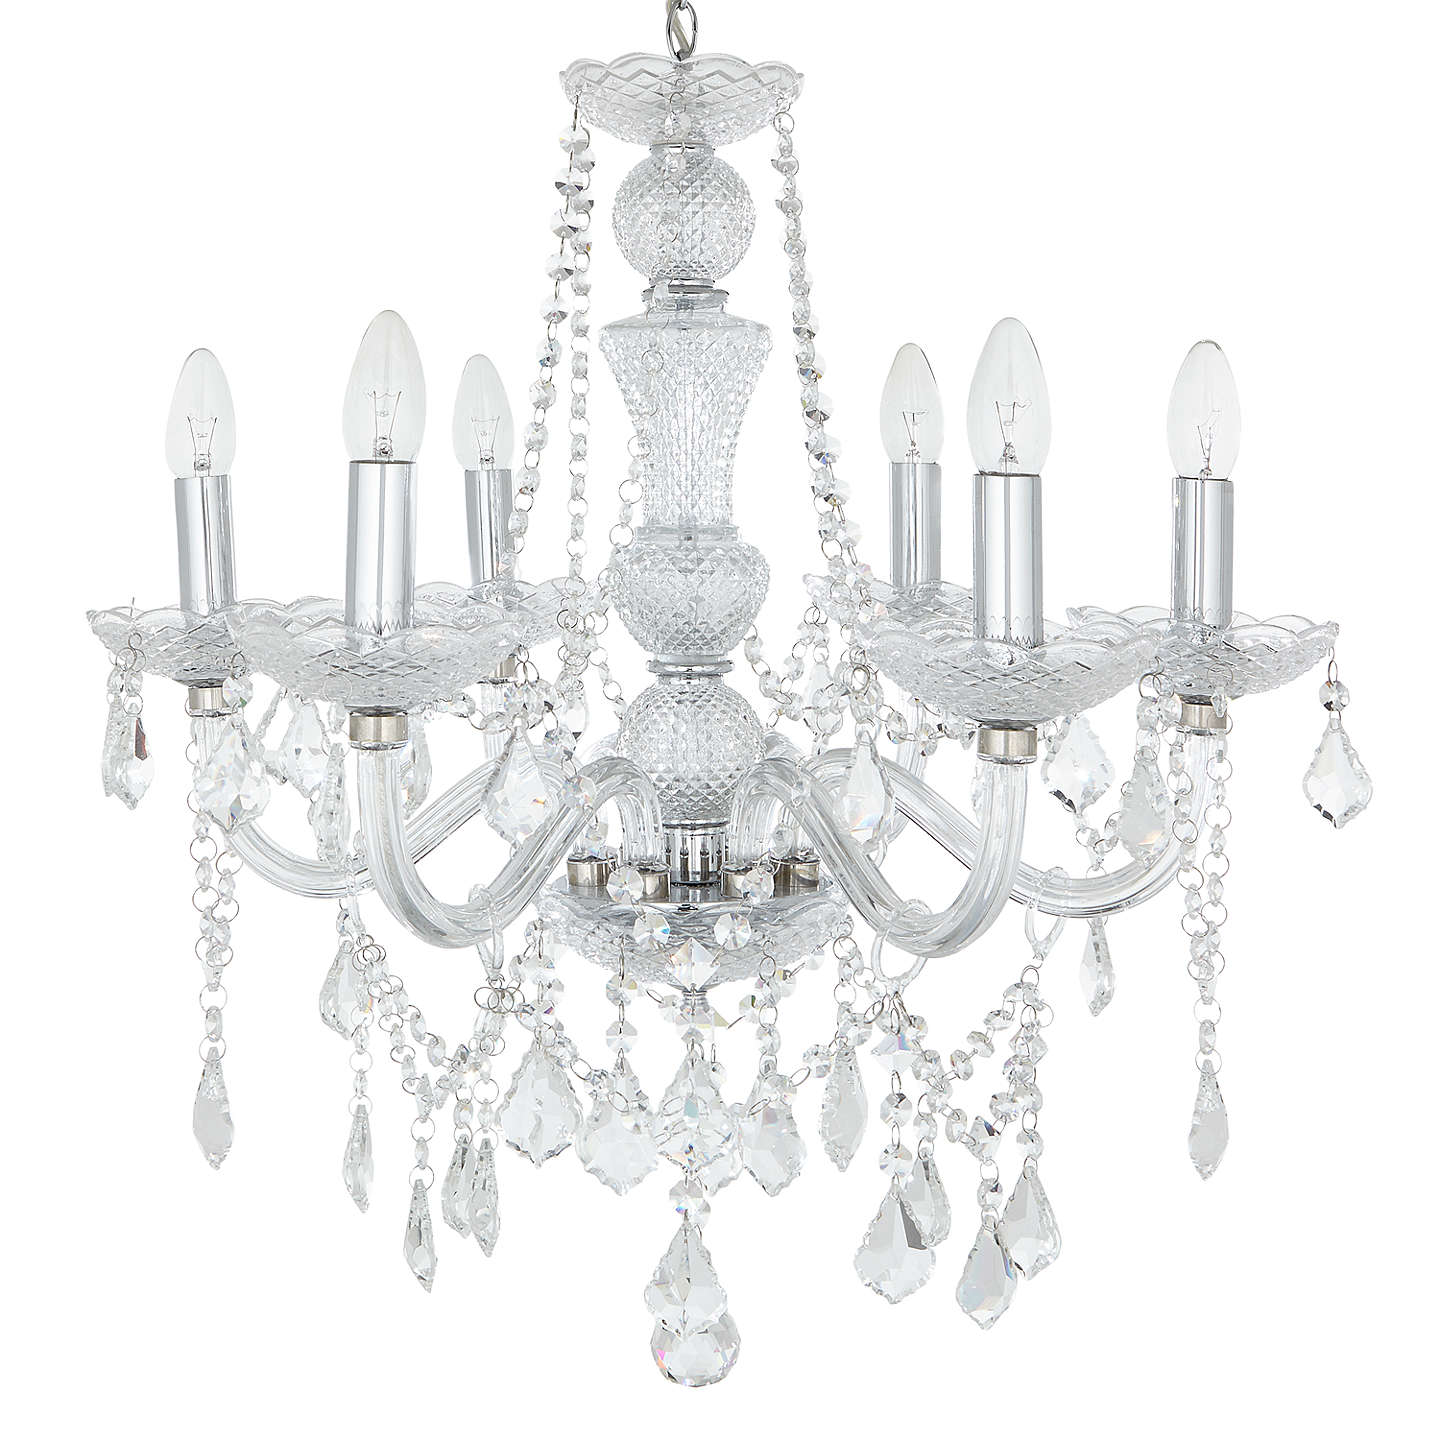 John lewis bethany chandelier 6 arm at john lewis buyjohn lewis bethany chandelier 6 arm online at johnlewis aloadofball Image collections